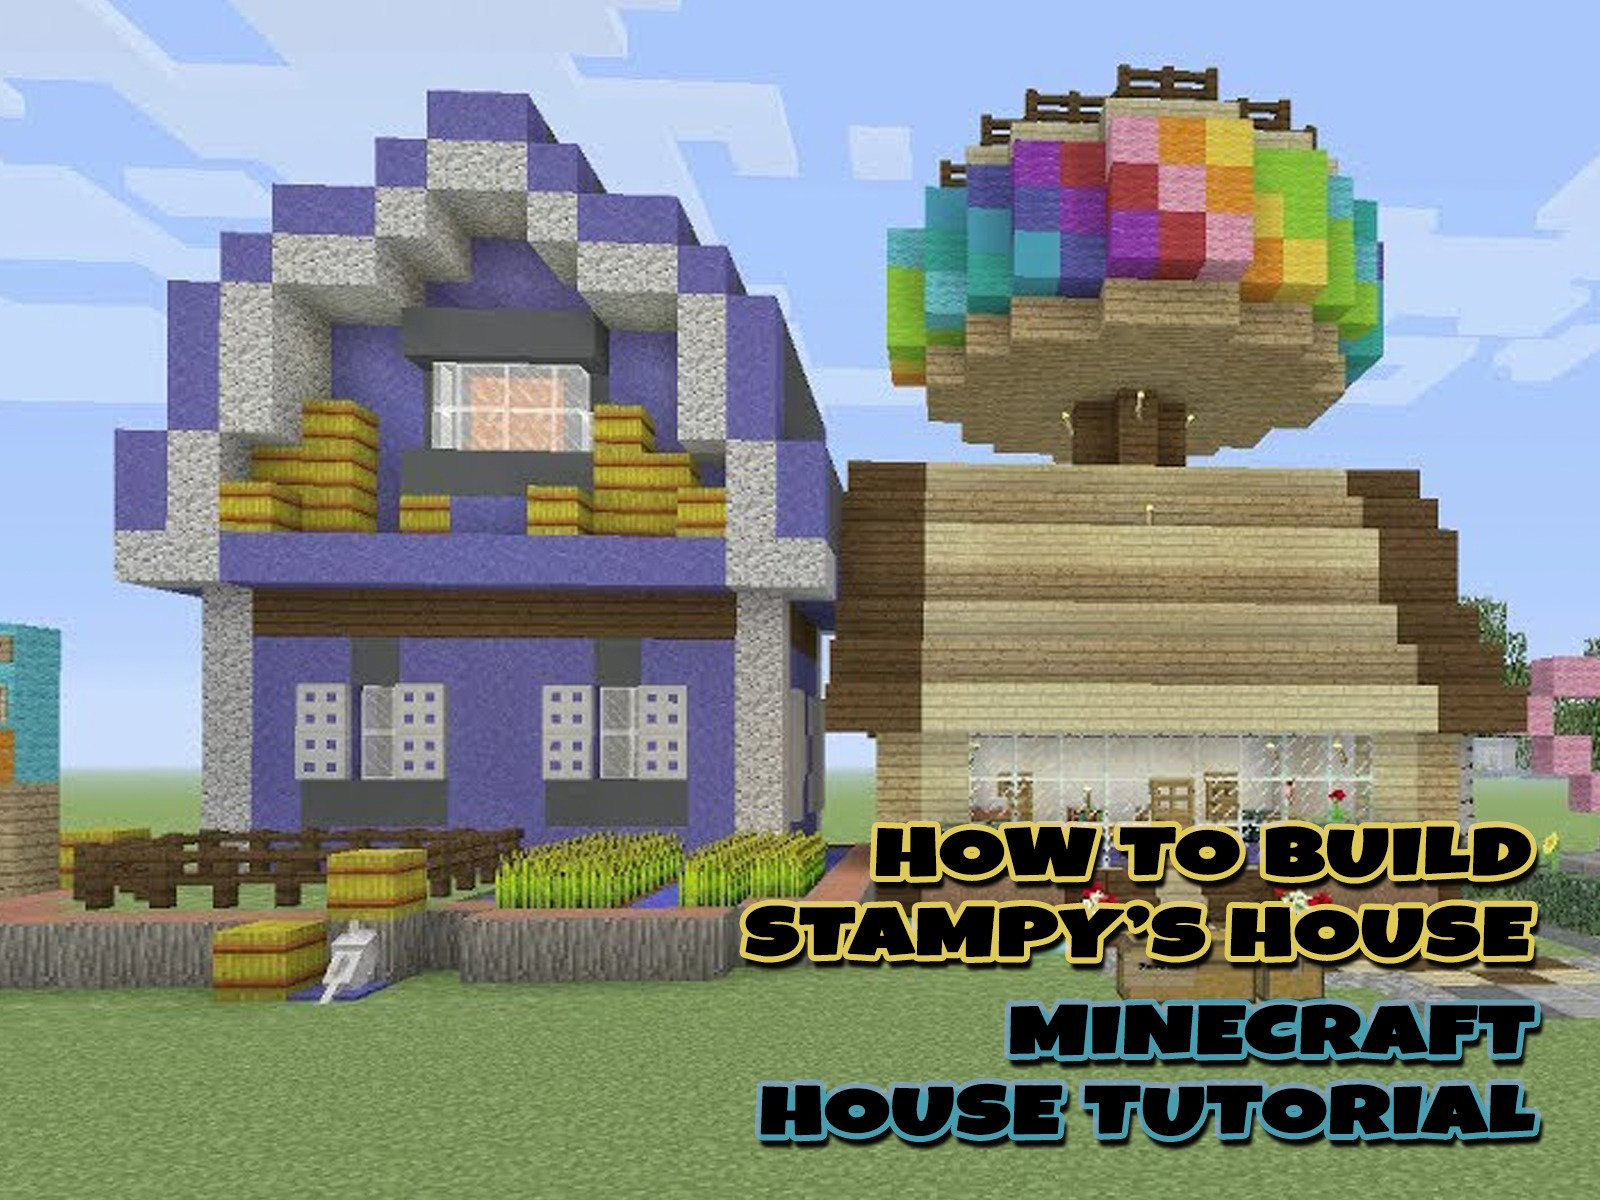 Amazon com: Watch Clip: How To Build Stampy's House